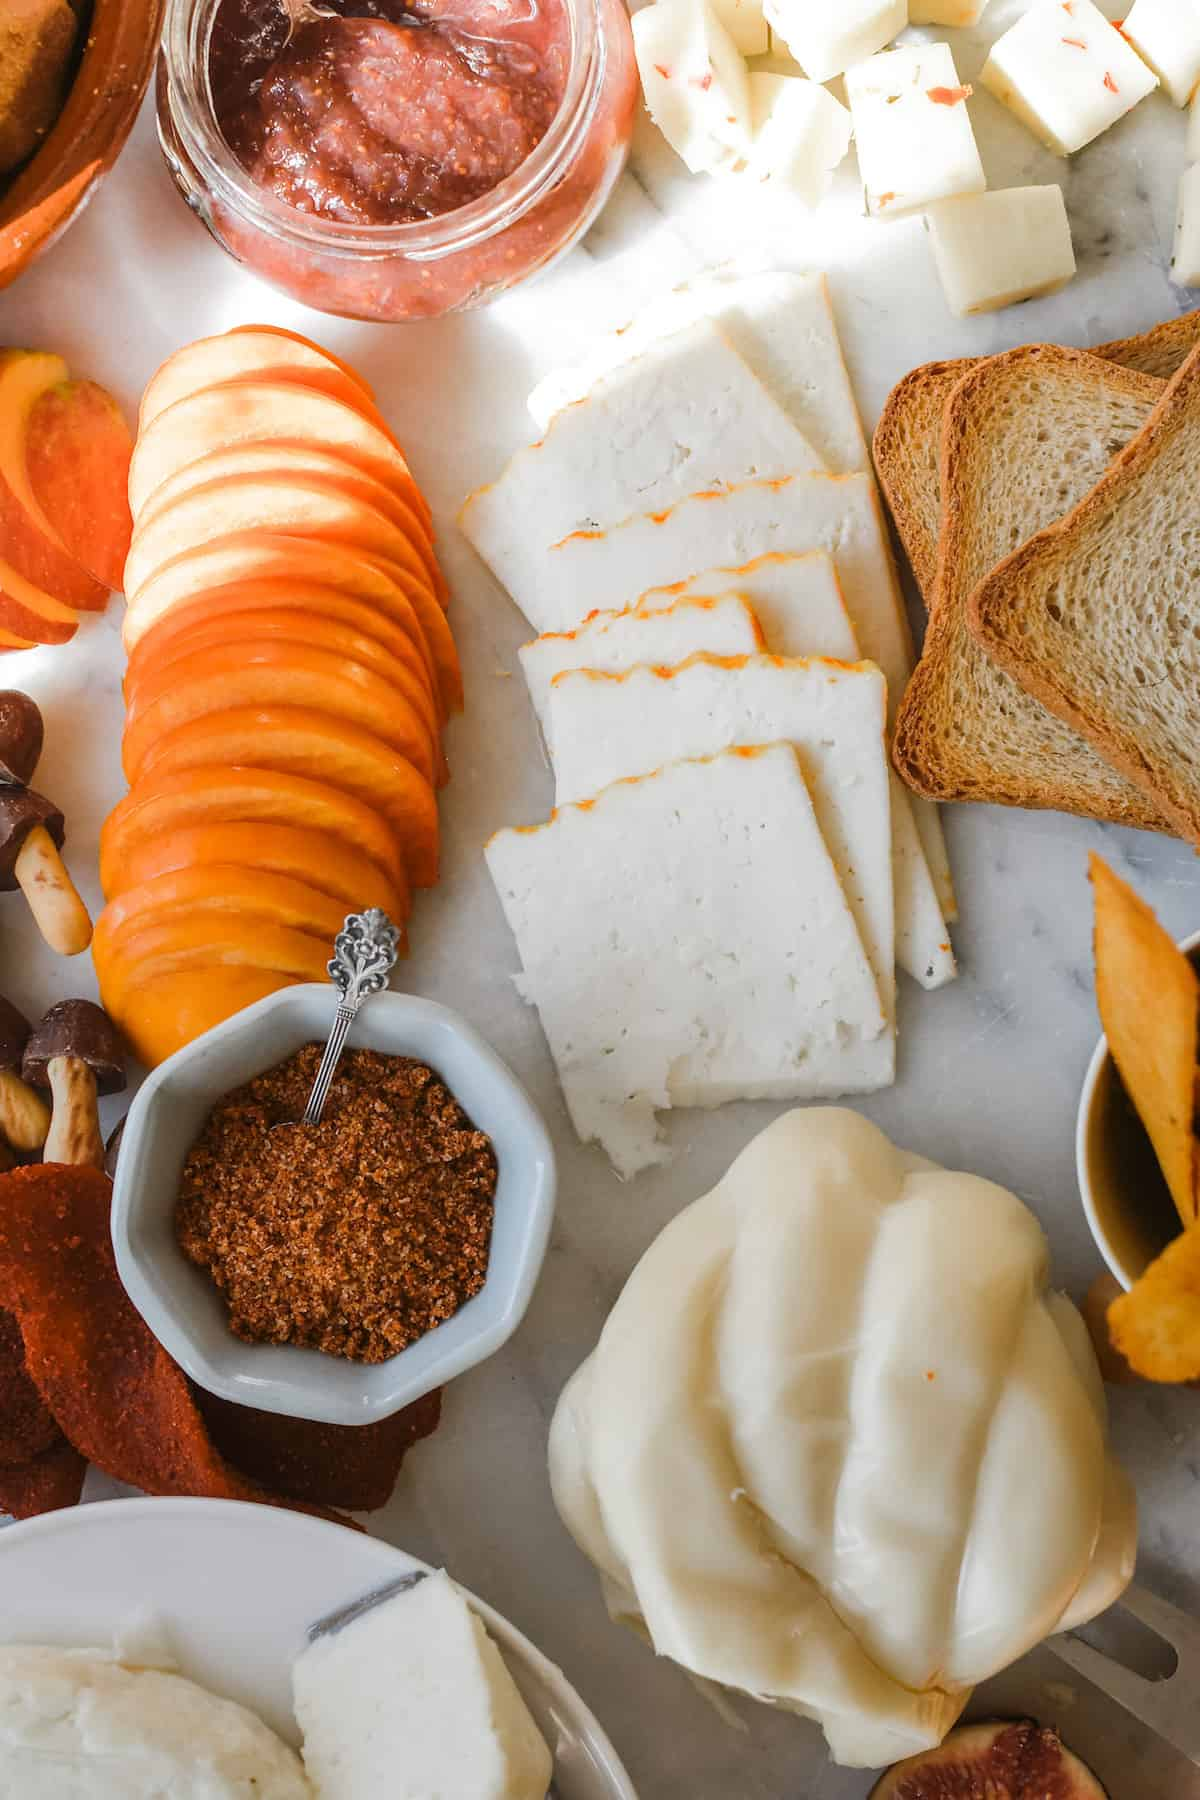 Thin slices of cheese laid out in a row next to slices of orange persimmon and pieces of toast with a ball of Queso Oaxaca on the edge.